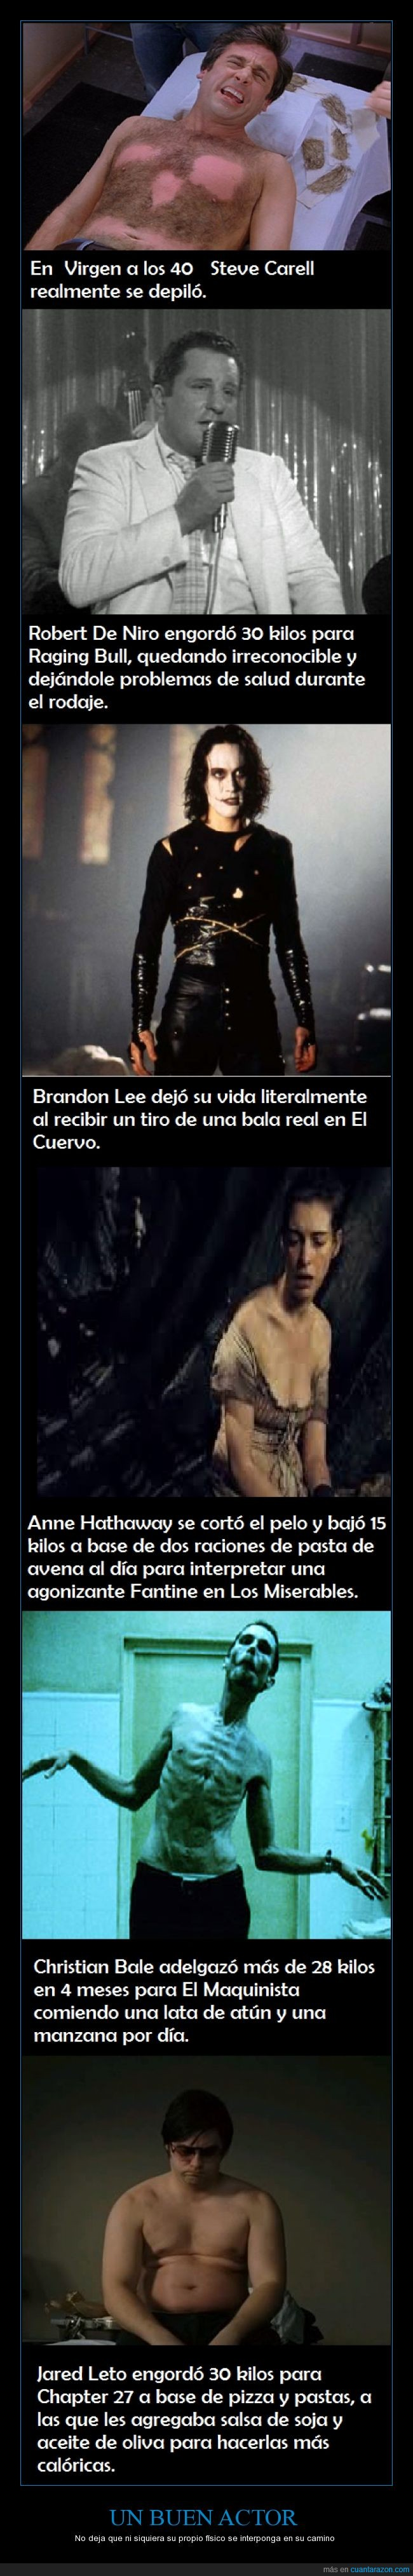 Actores,Actrices,Anne Hathaway,Brendon Lee,Christian Bale,Cuerpo,dolor,Fisico,Jared Leto,Pelicula,peso,robert deniro,Steve Carrell